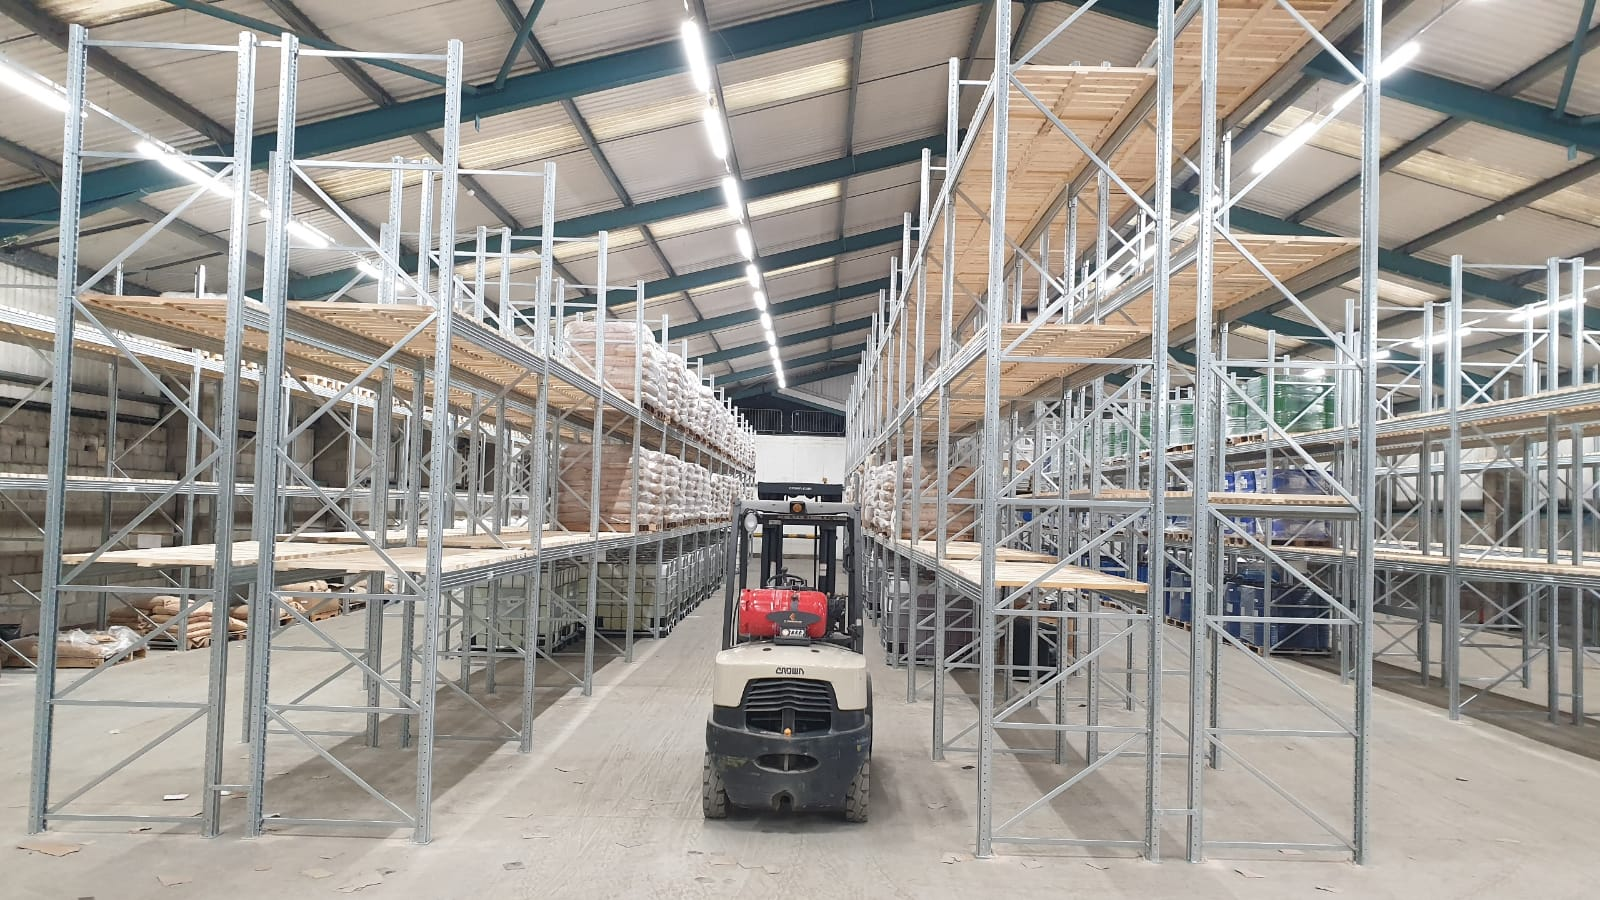 Filstorage design skills put to the test by new logistics company